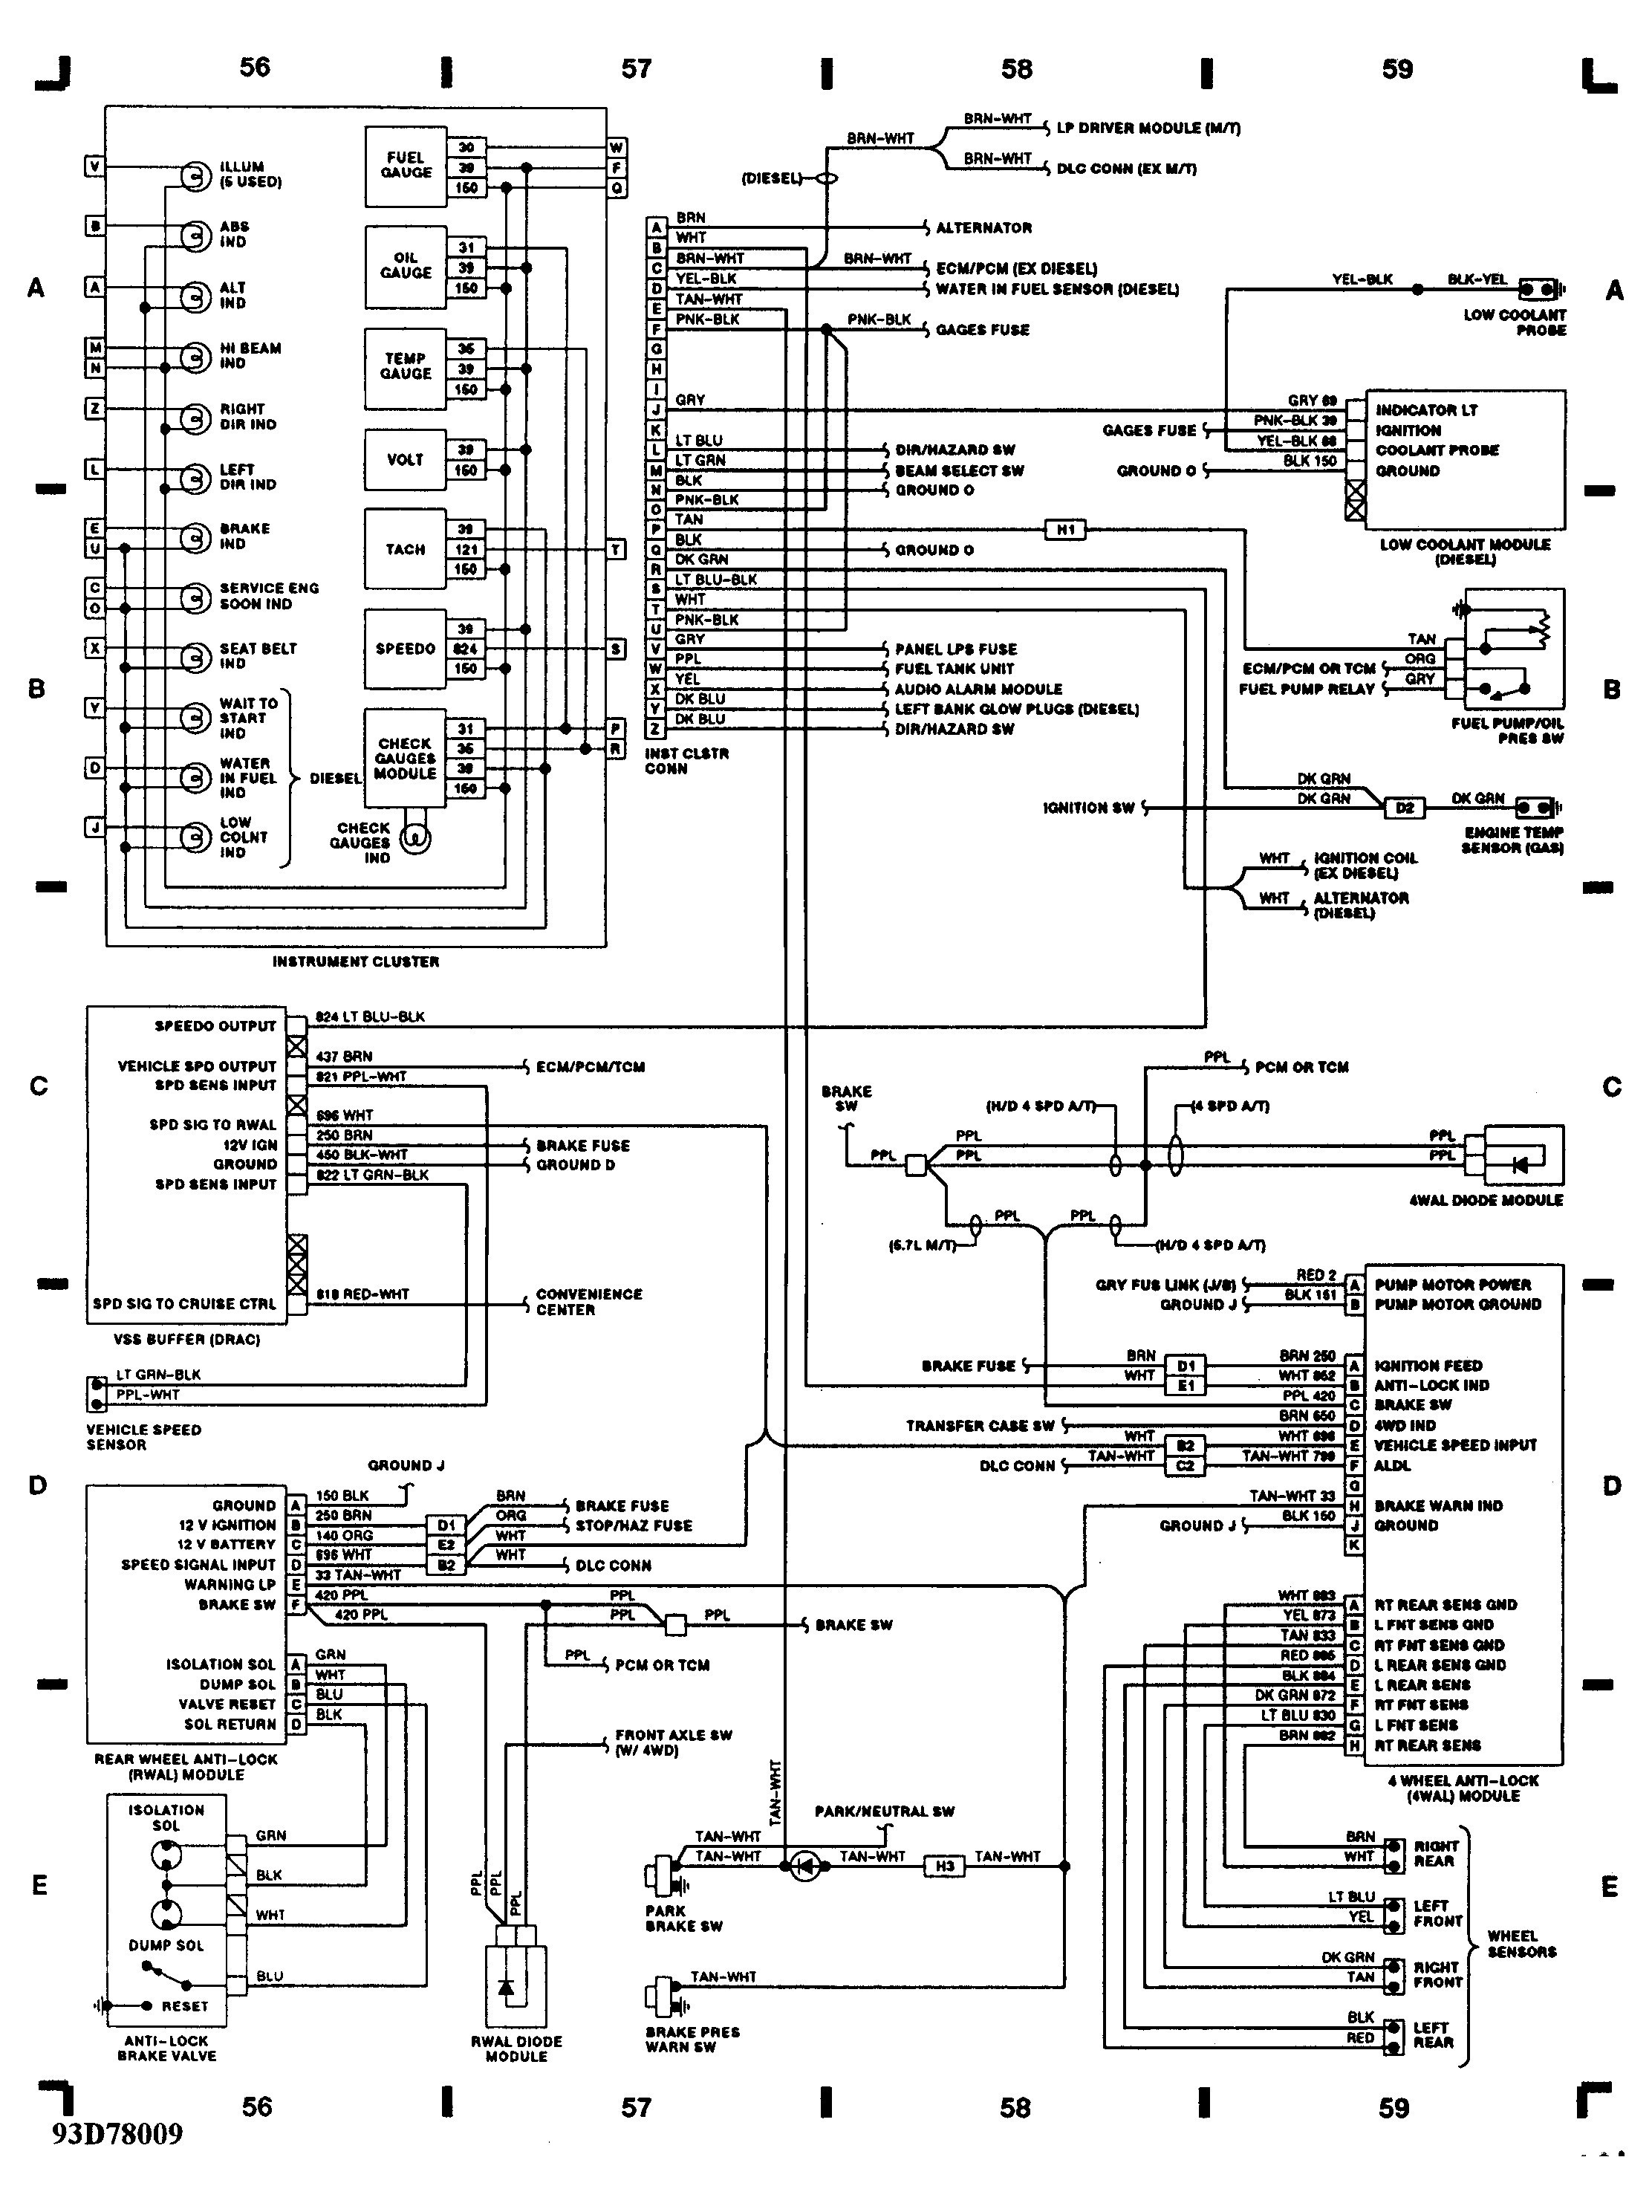 jeep 3 8l engine diagram schematic wiring diagram 2010 Ford Fusion Hybrid Engine Diagram chrysler 3 8 engine diagram wiring diagram name 2010 jeep wrangler engine jeep 3 8 engine